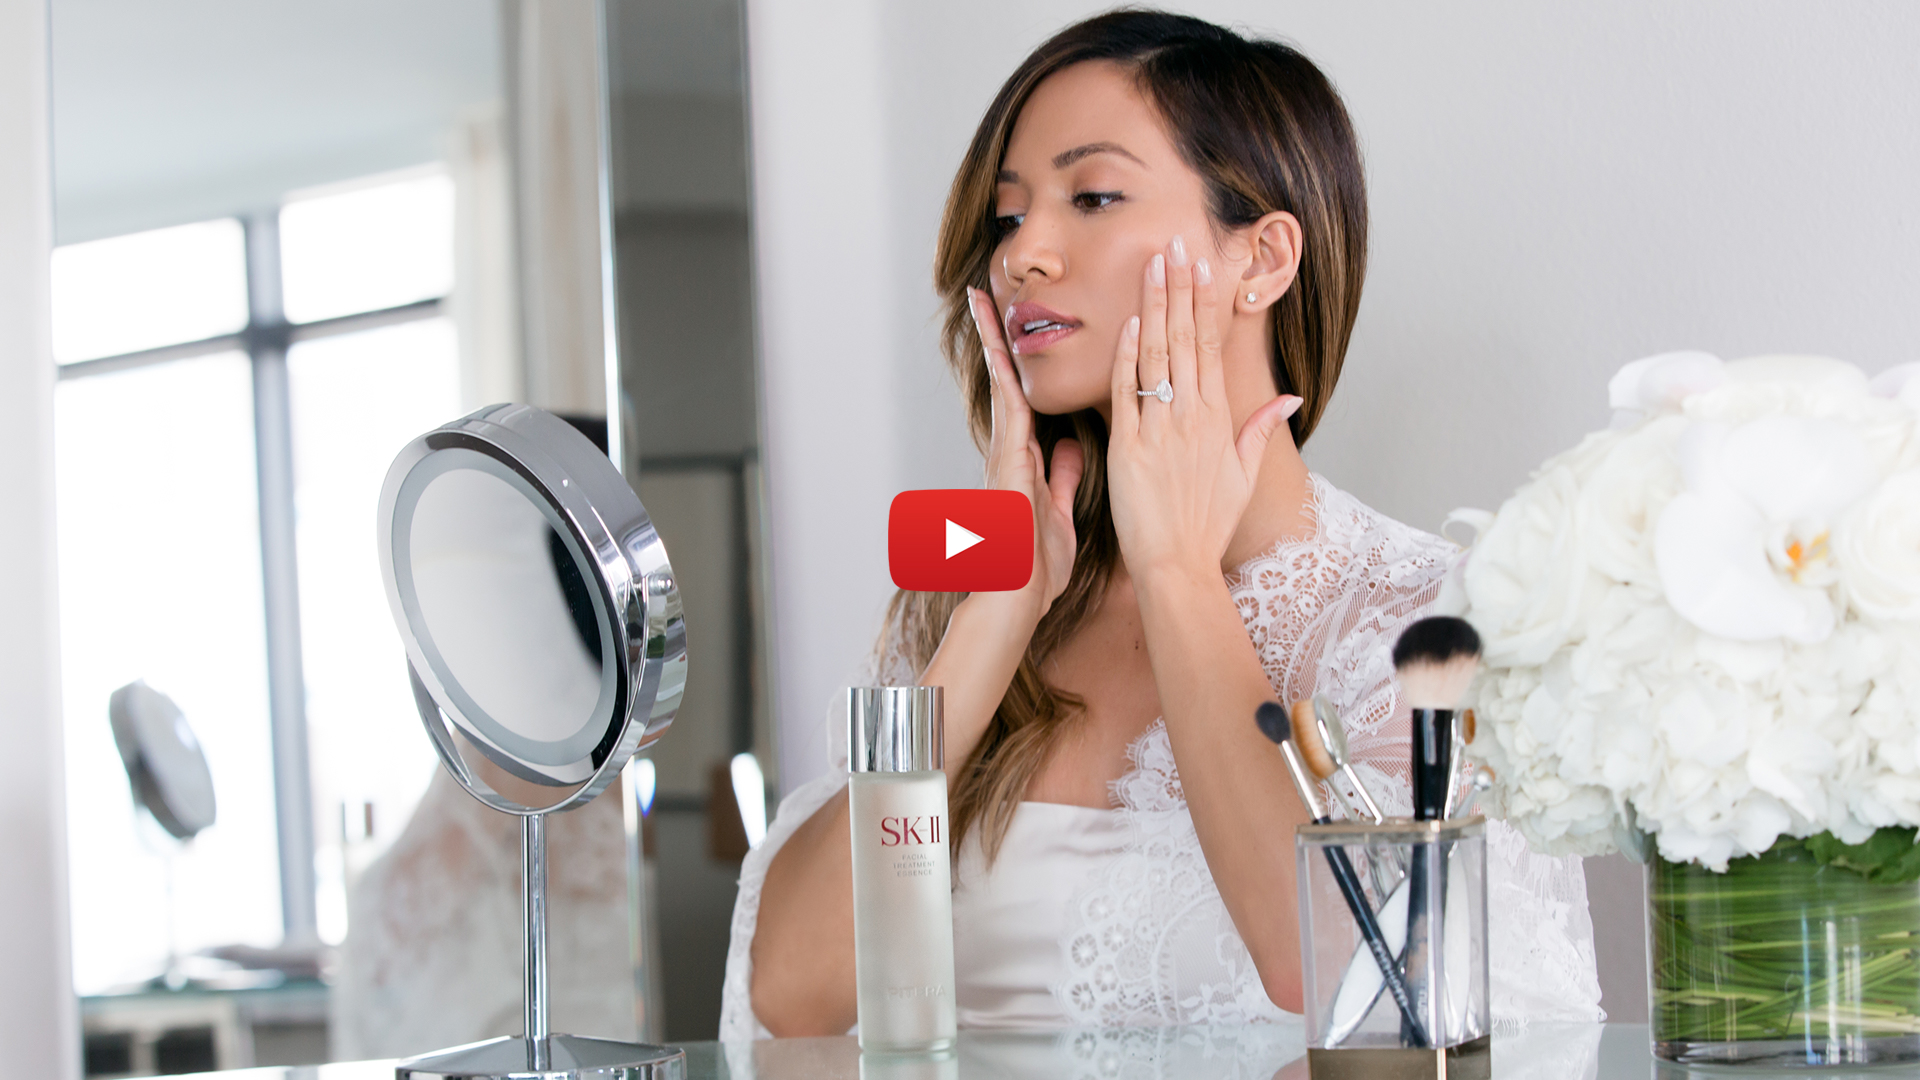 SK-II Facial Treatment Essence Video